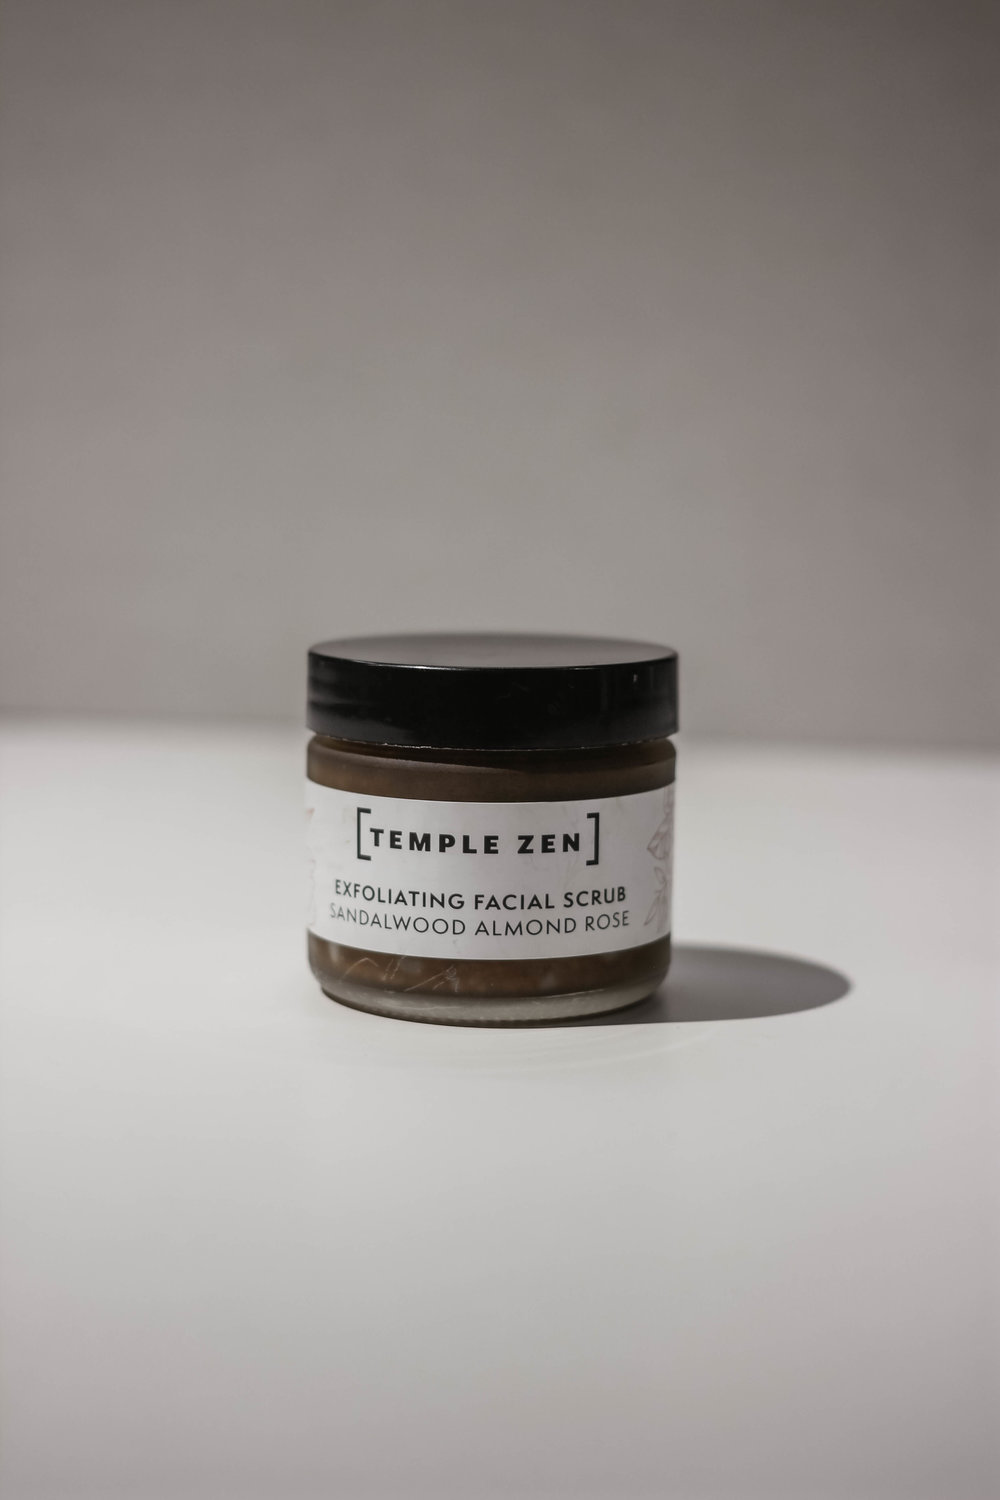 Exfoliating Facial Scrub - Once a week I will exfoliate with the facial scrub after cleansing. It's a bit intense but it does do a great job of exfoliating. I don't use the scrub the same day I do the mask.